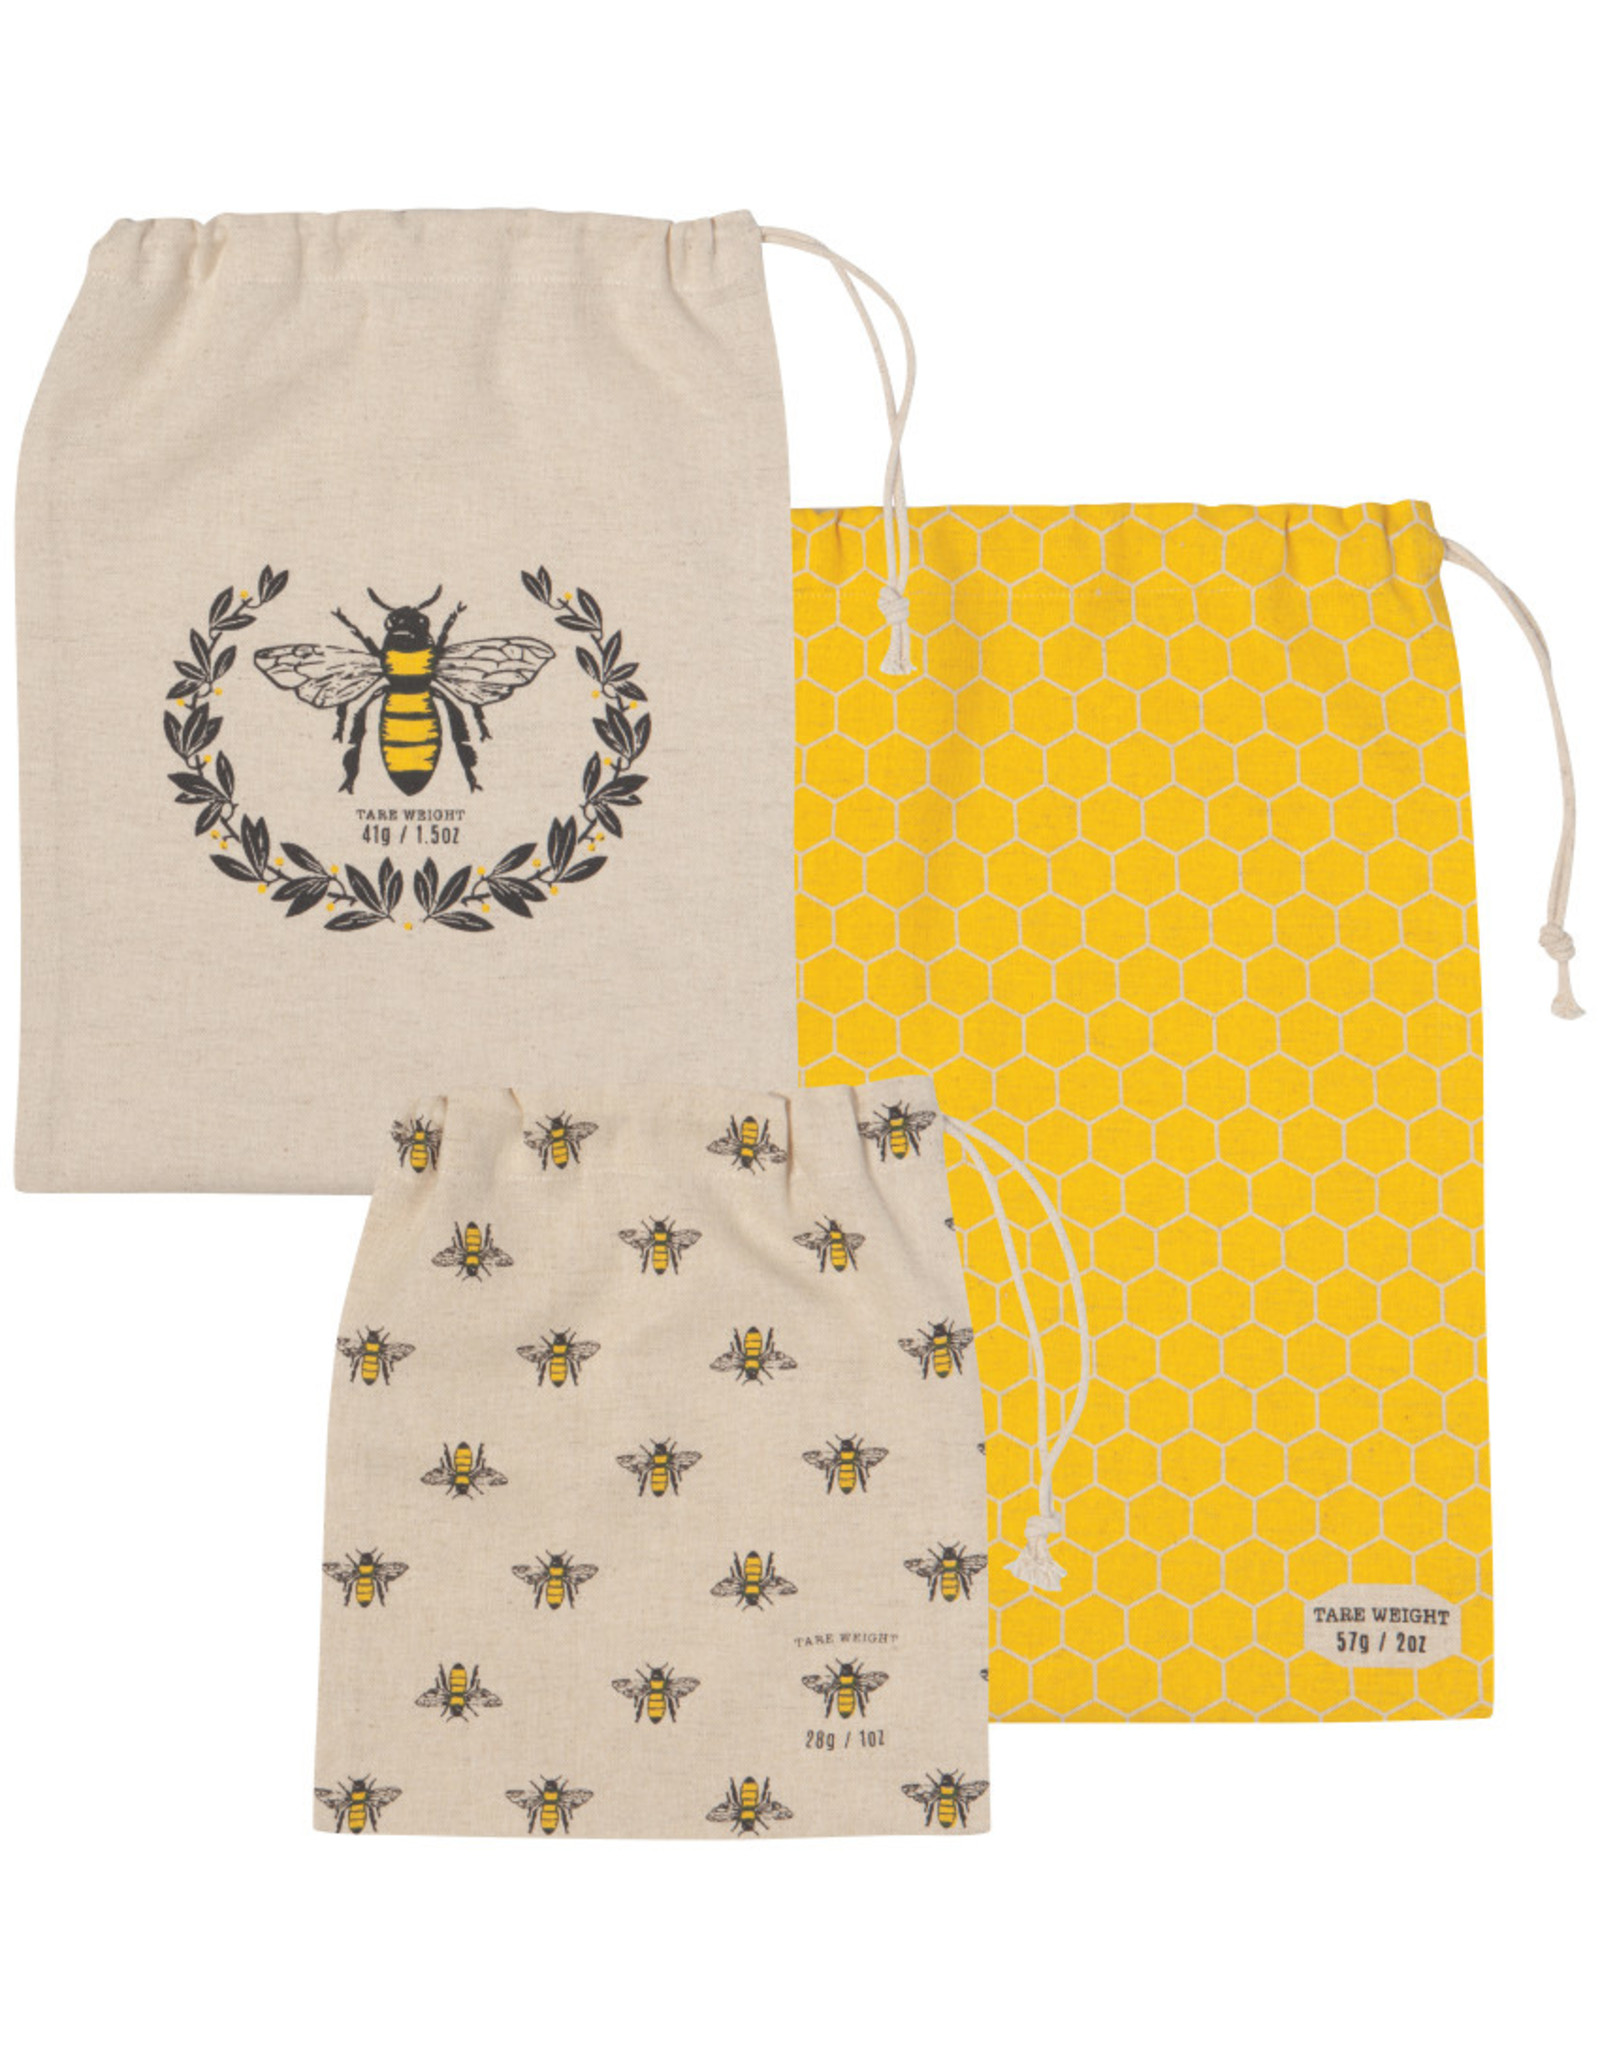 DCA - Produce Bag Set/Bee